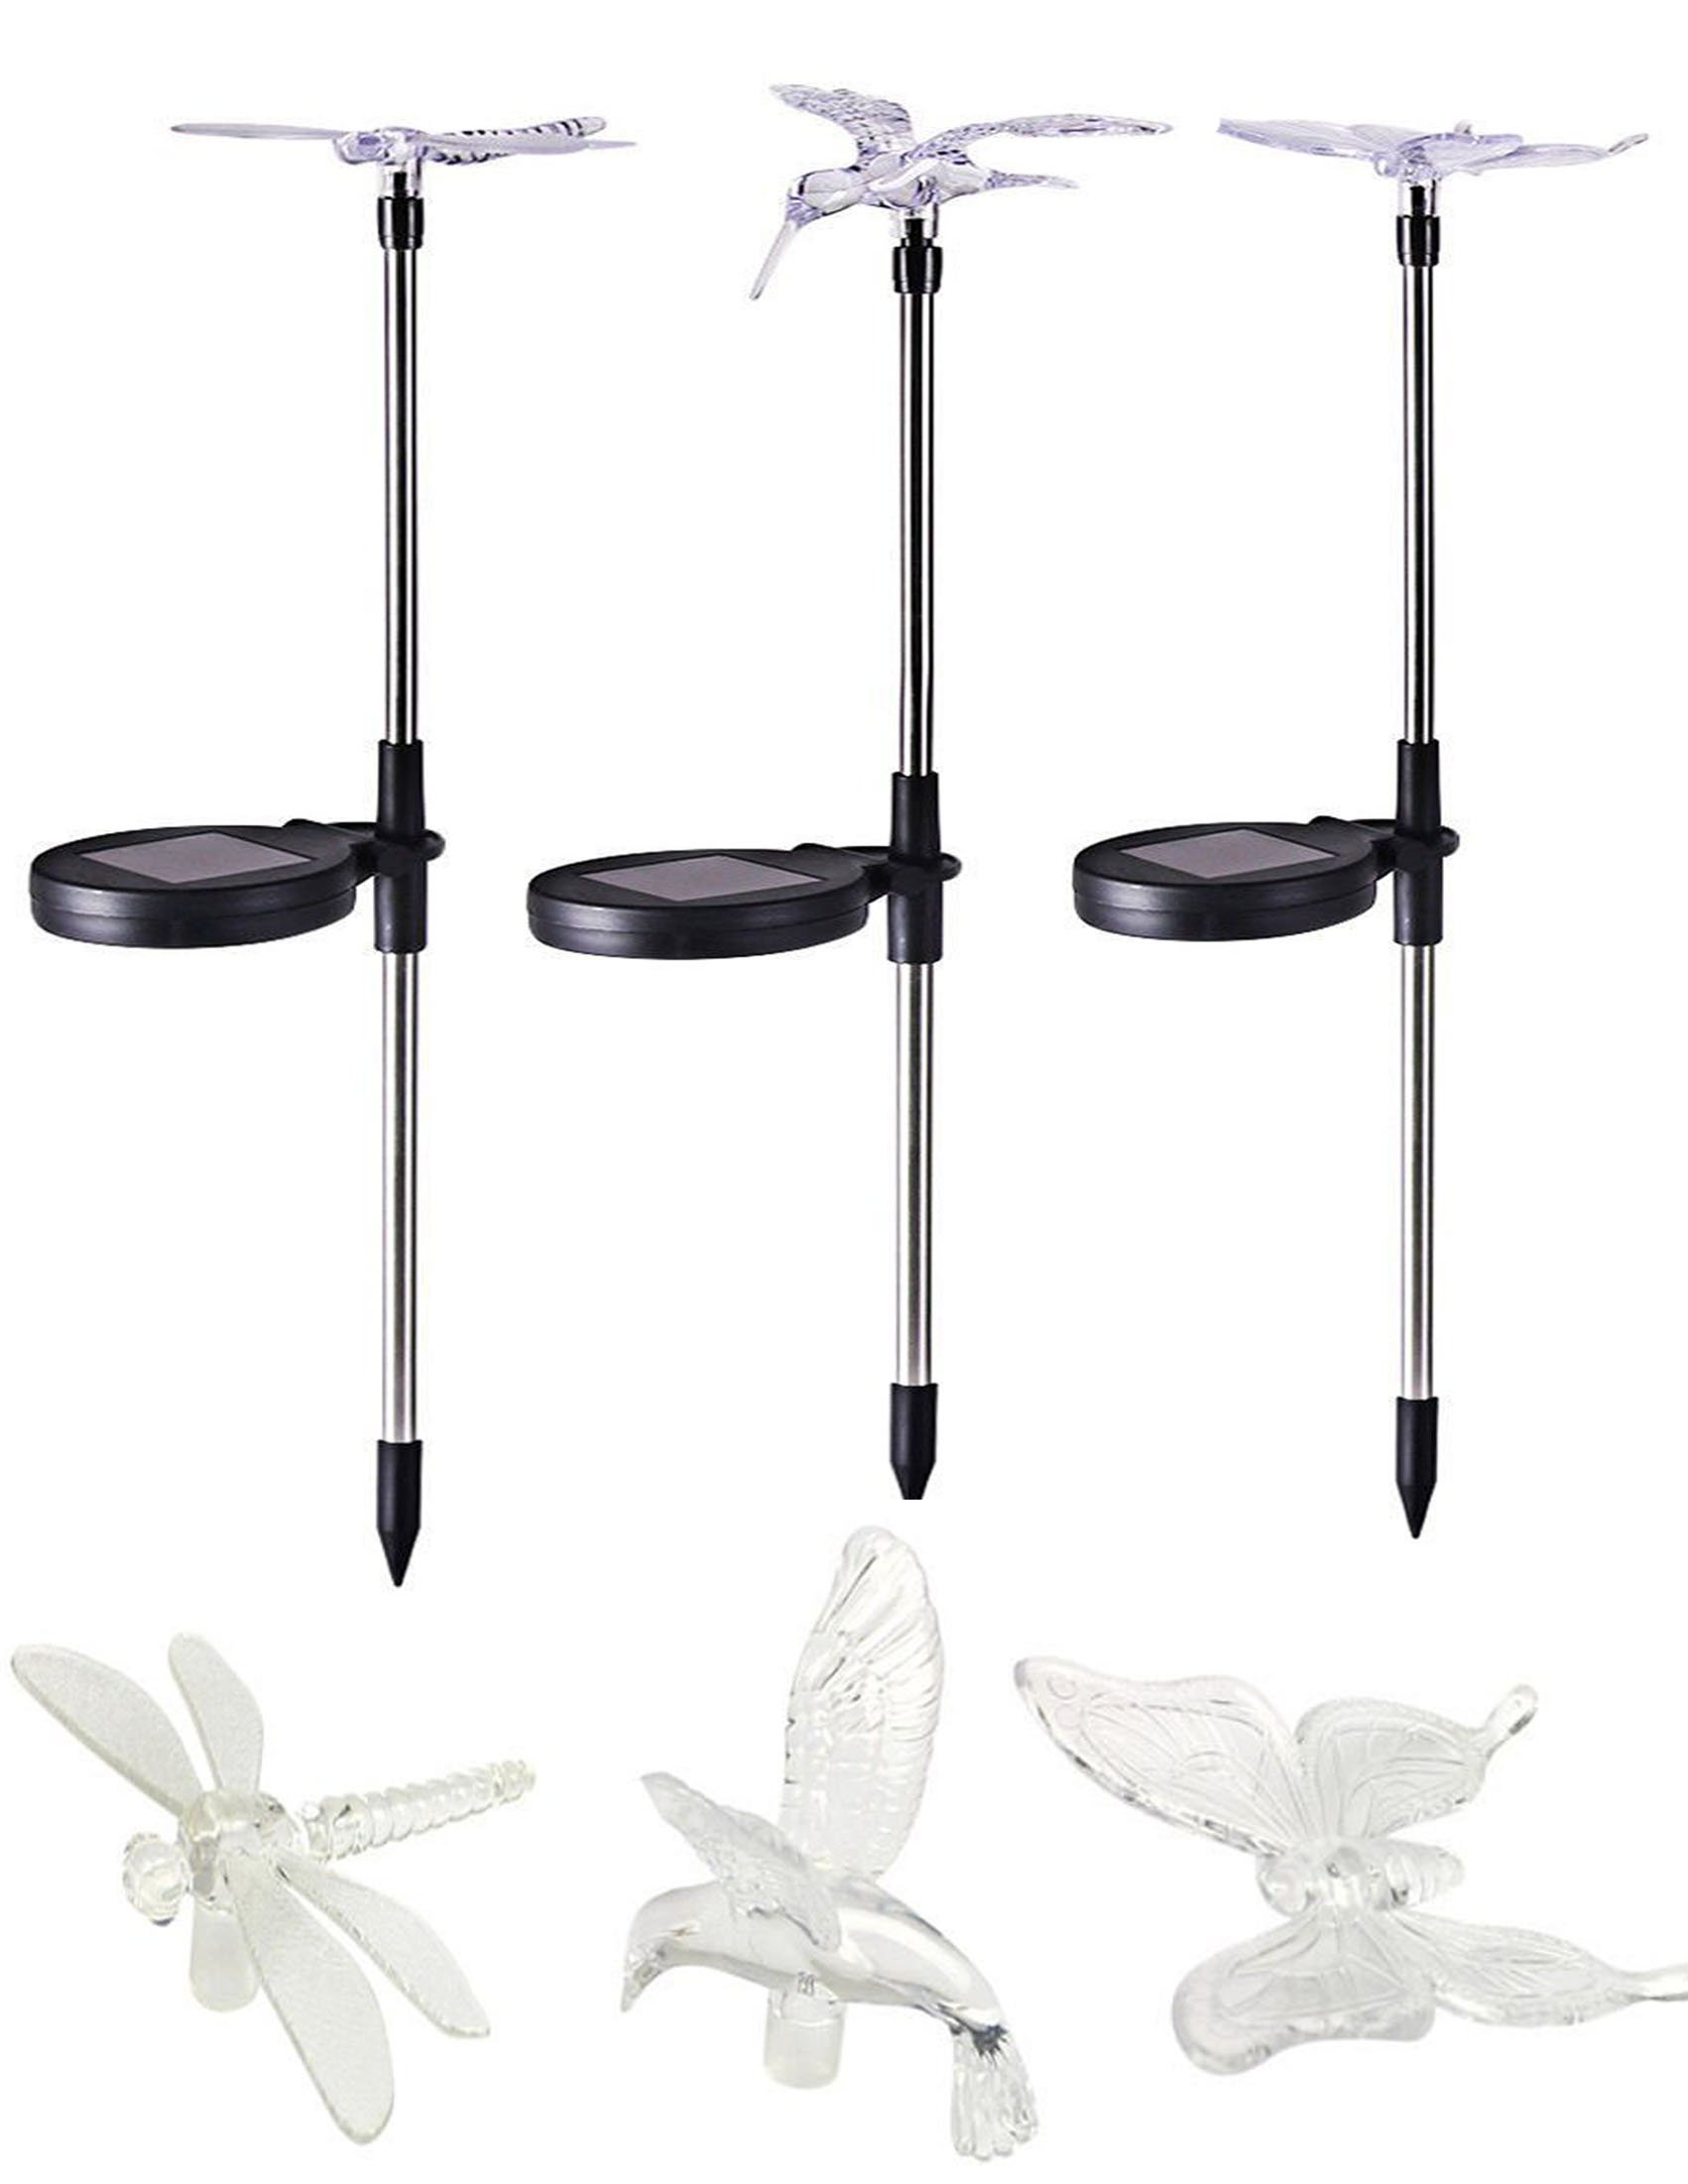 Solar Garden Lights - Crystal Upper Stake with Built in Multi-Color Changing LED 3 Pack (Butterfly, Hummingbird, Dragonfly) Landscape Lights for Garden, Patio, Pathway Lawn Backyard, Garden Decor USA